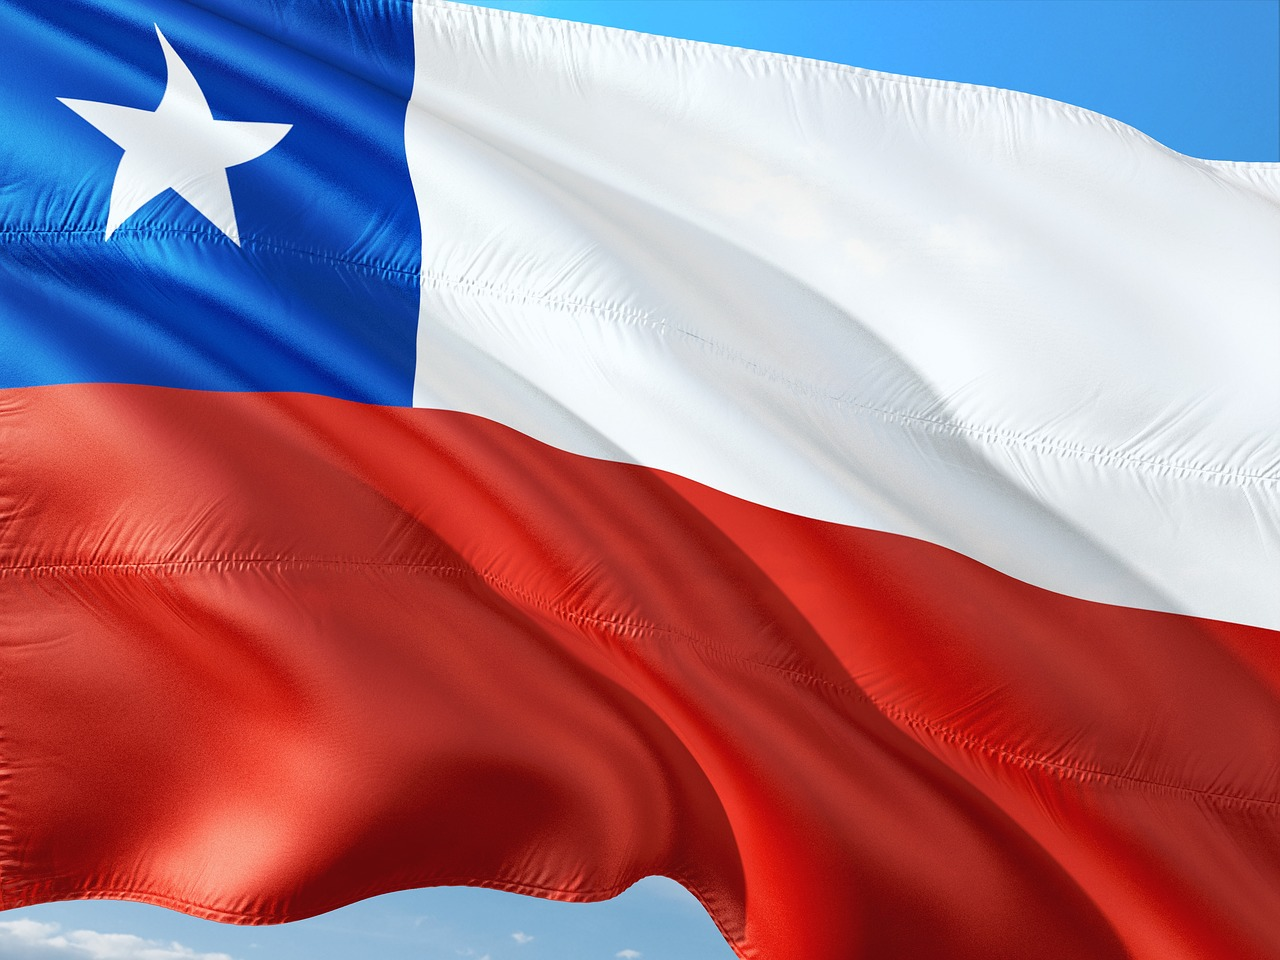 A Chilean flag blowing in the wind.